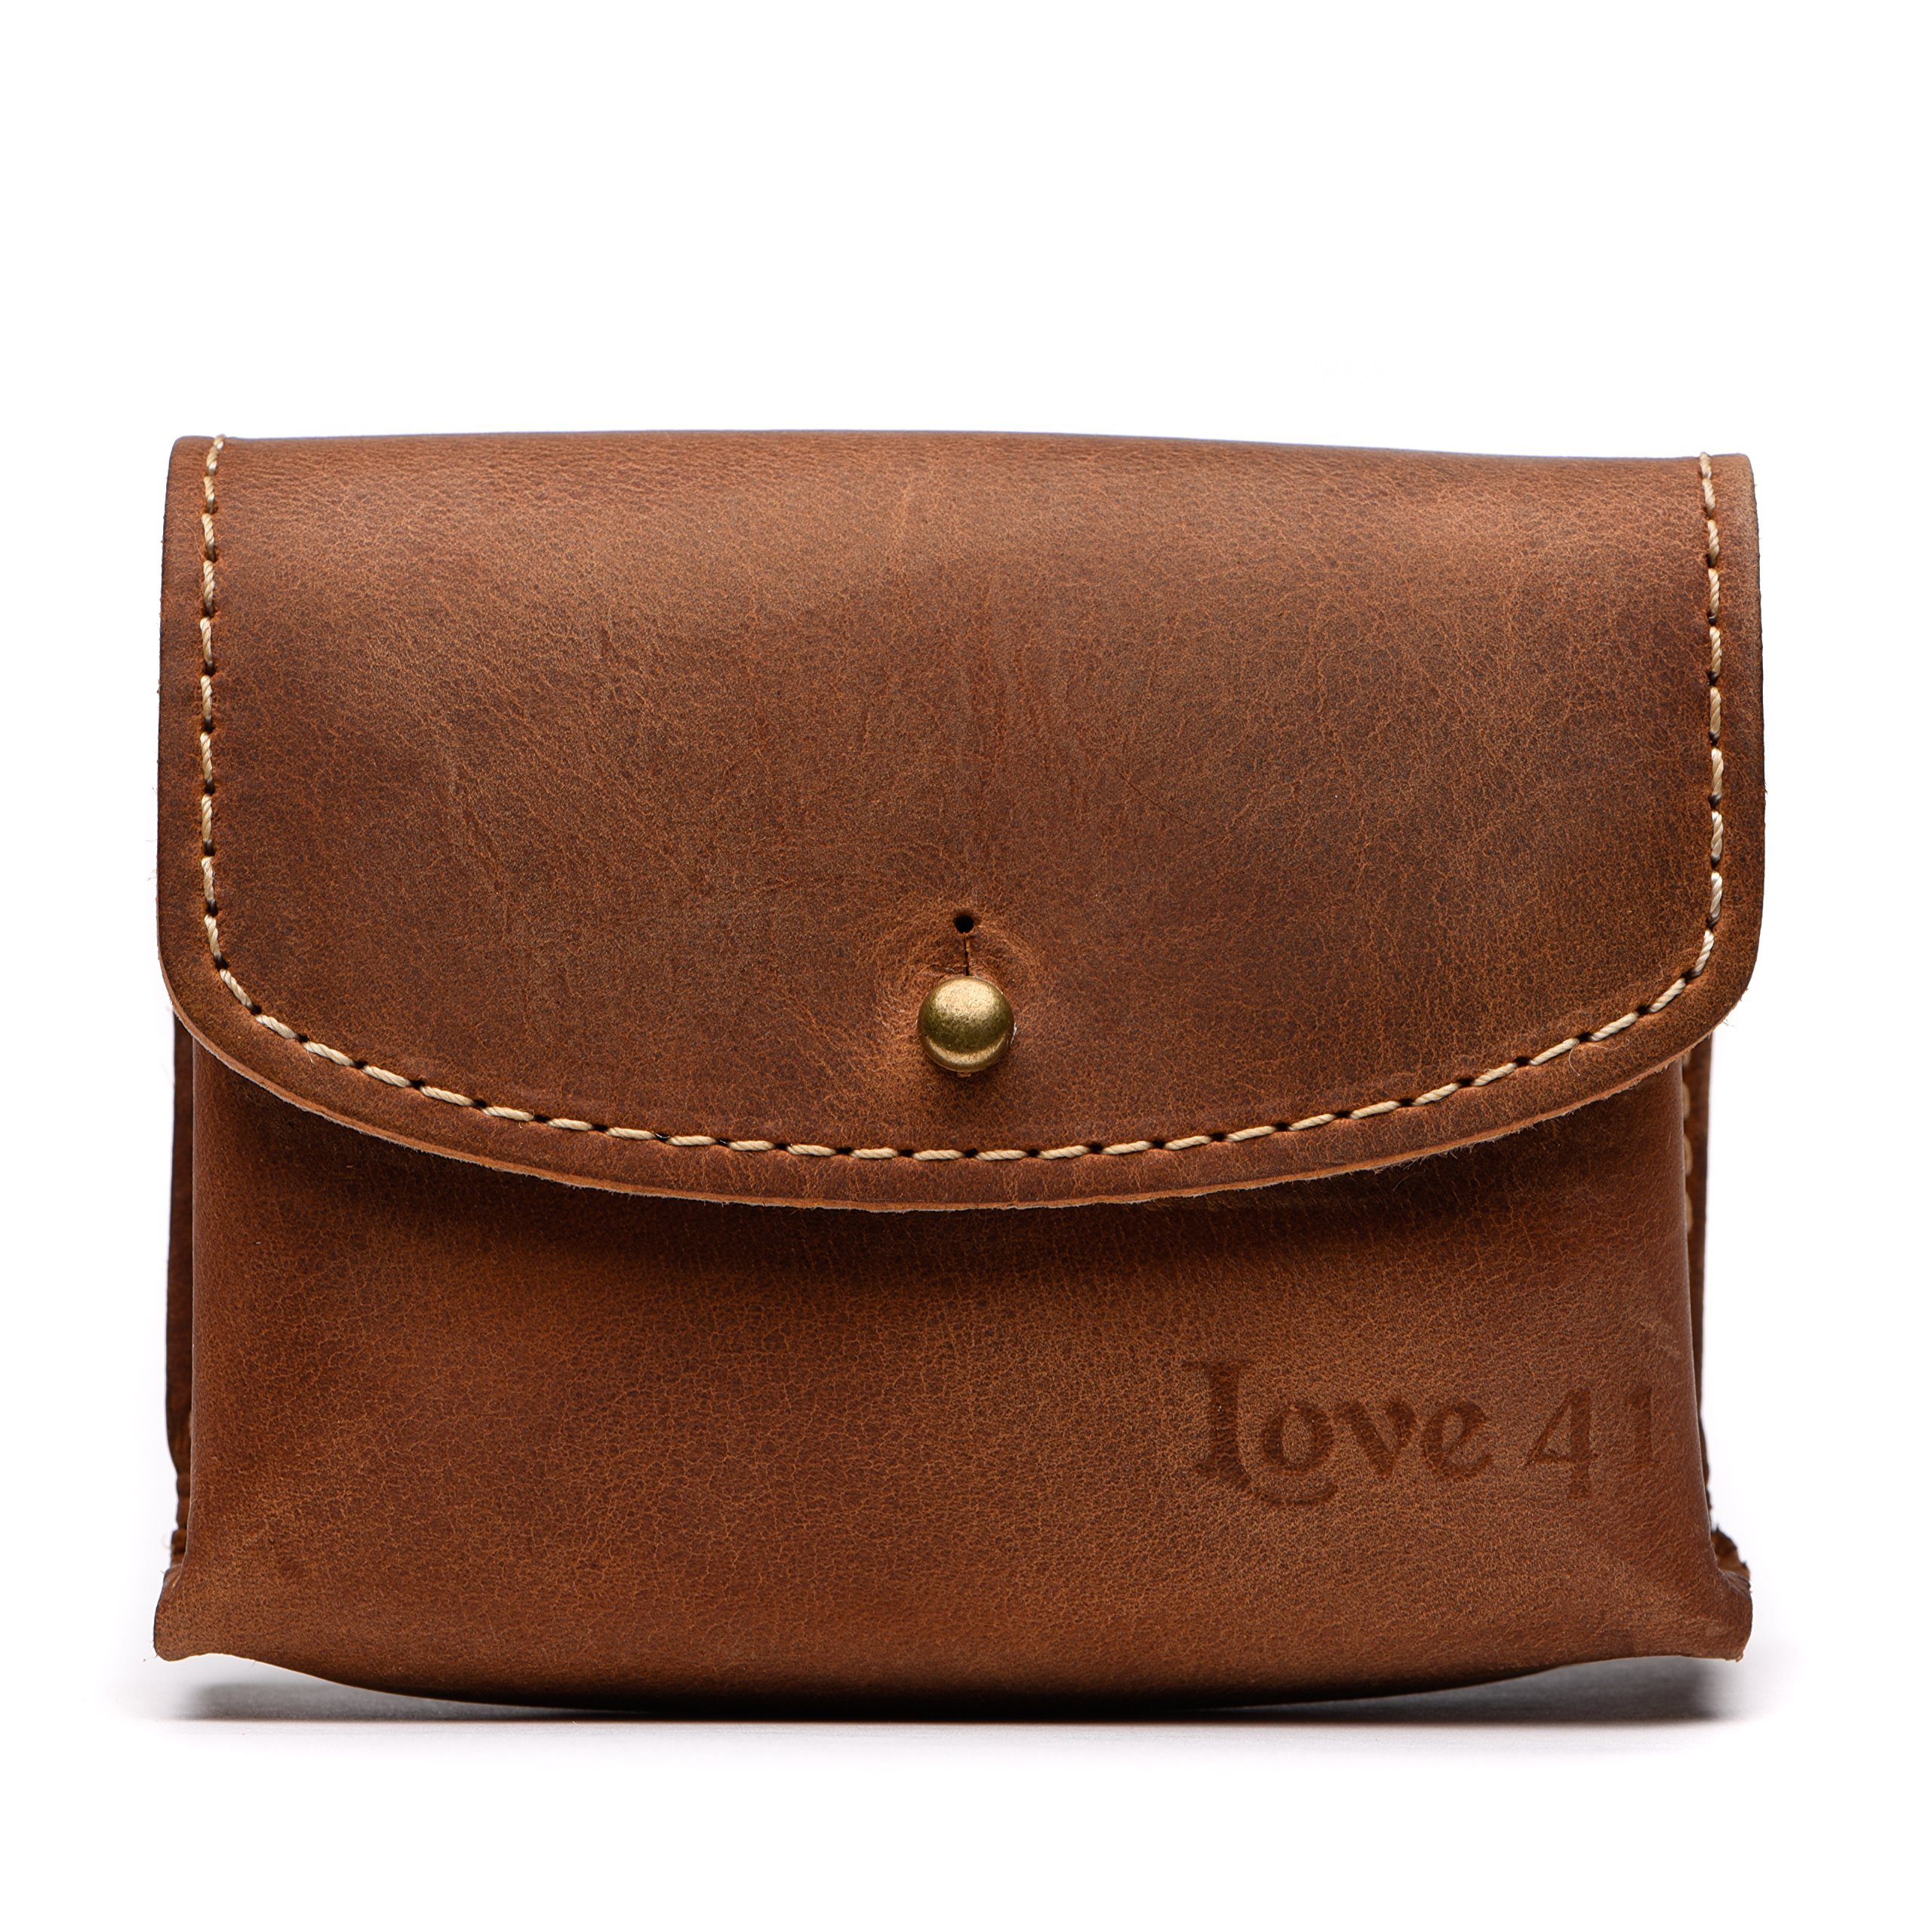 Love 41 Essential Oils Case Pouch for Women Includes 41 Year Warranty